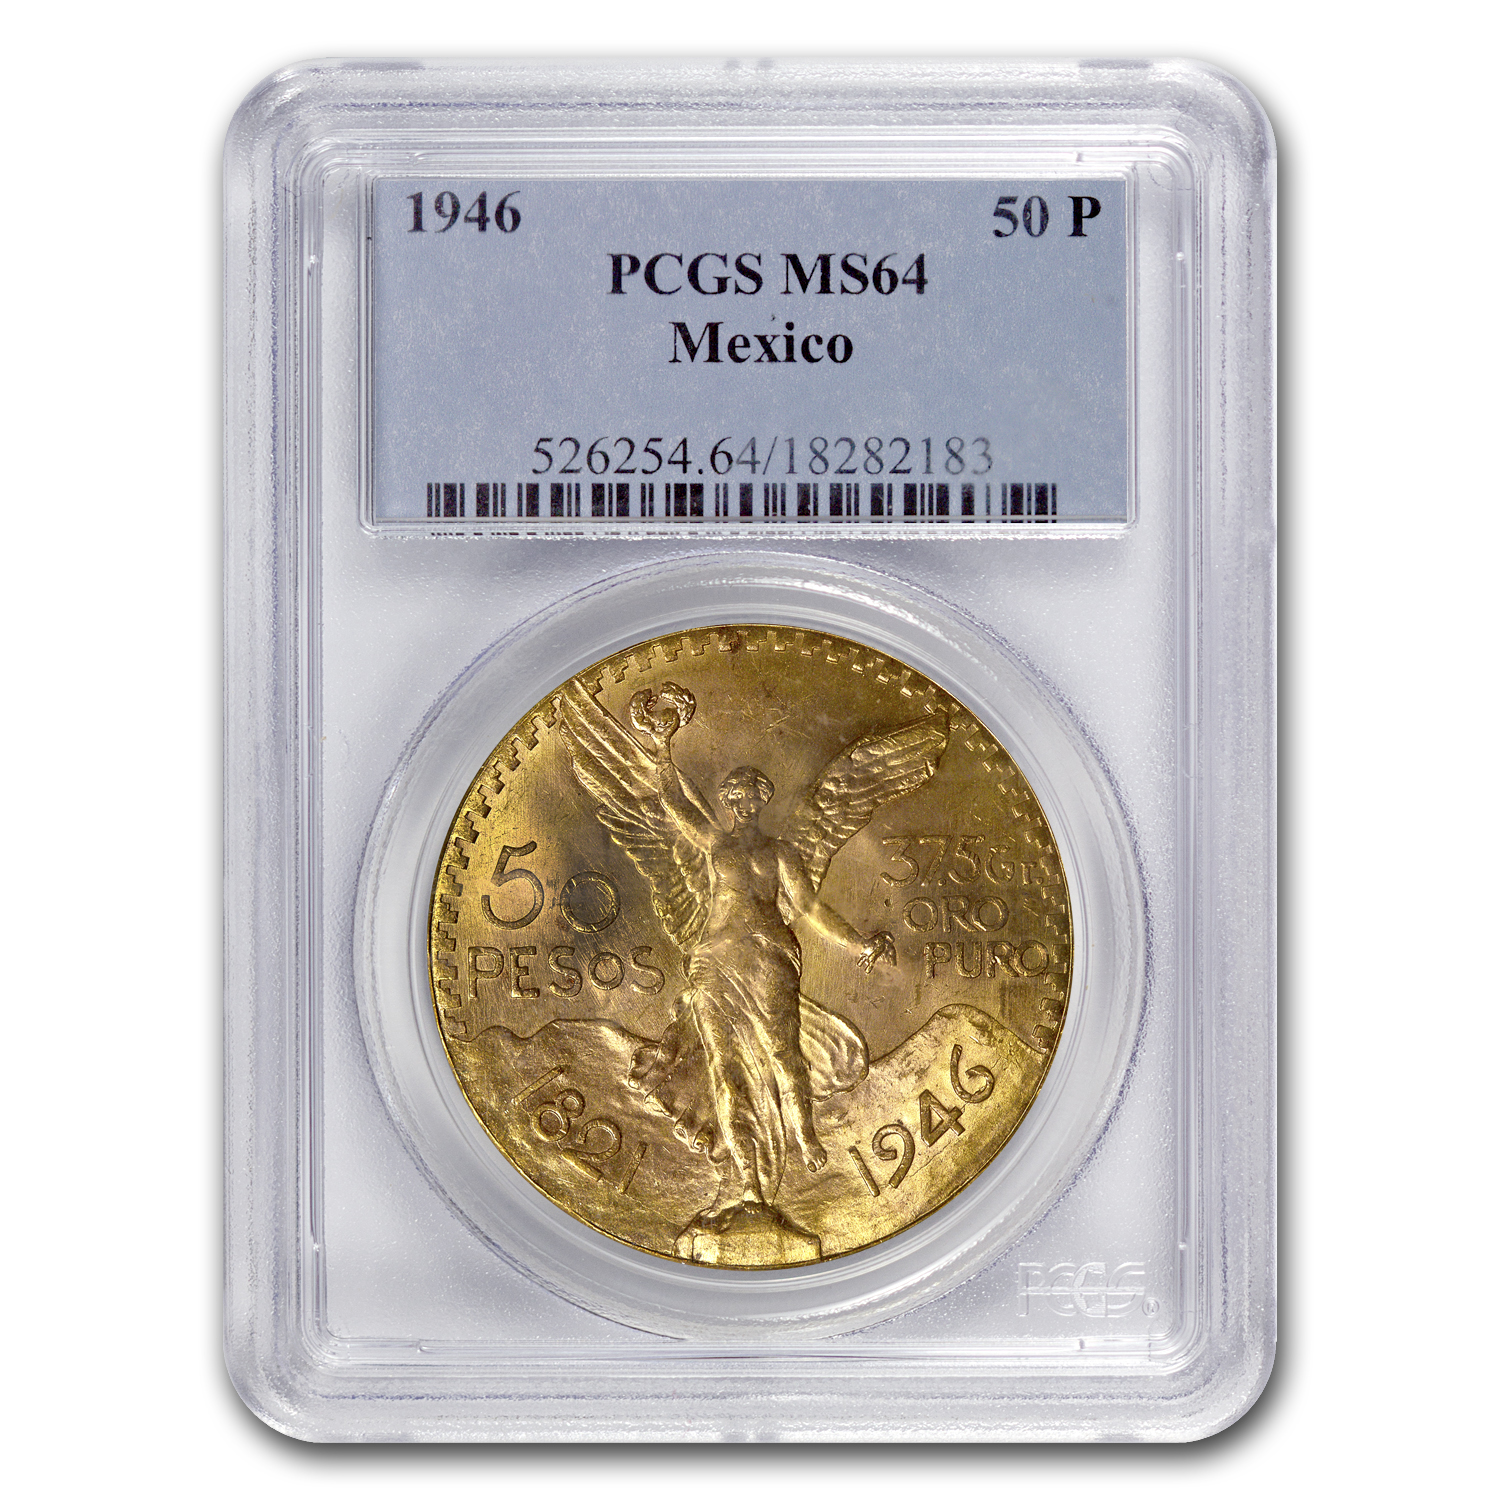 Mexico 1946 50 Pesos Gold MS-64 PCGS